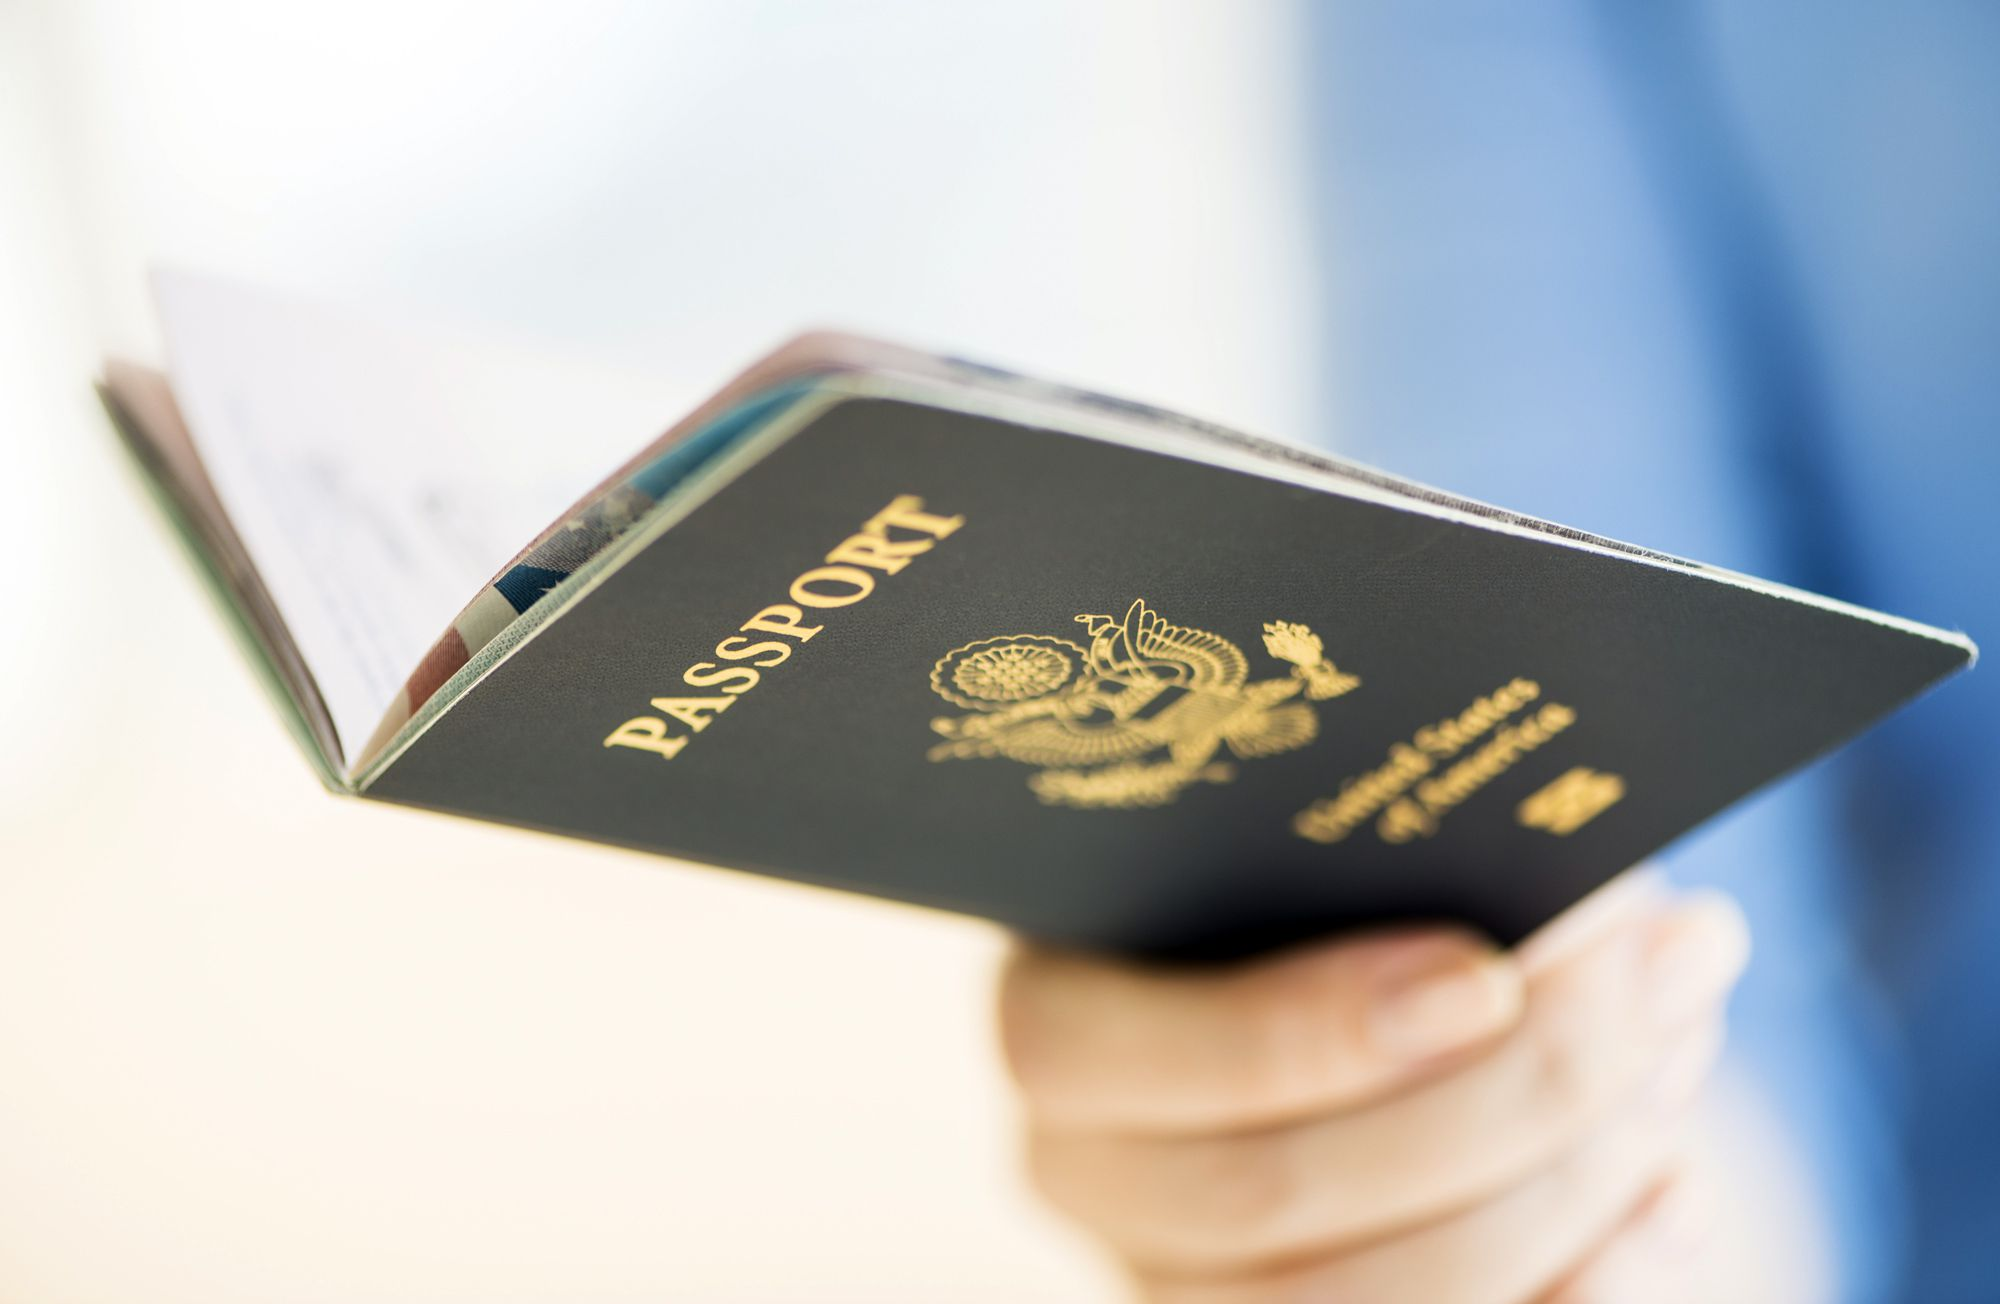 Make sure you have your passport